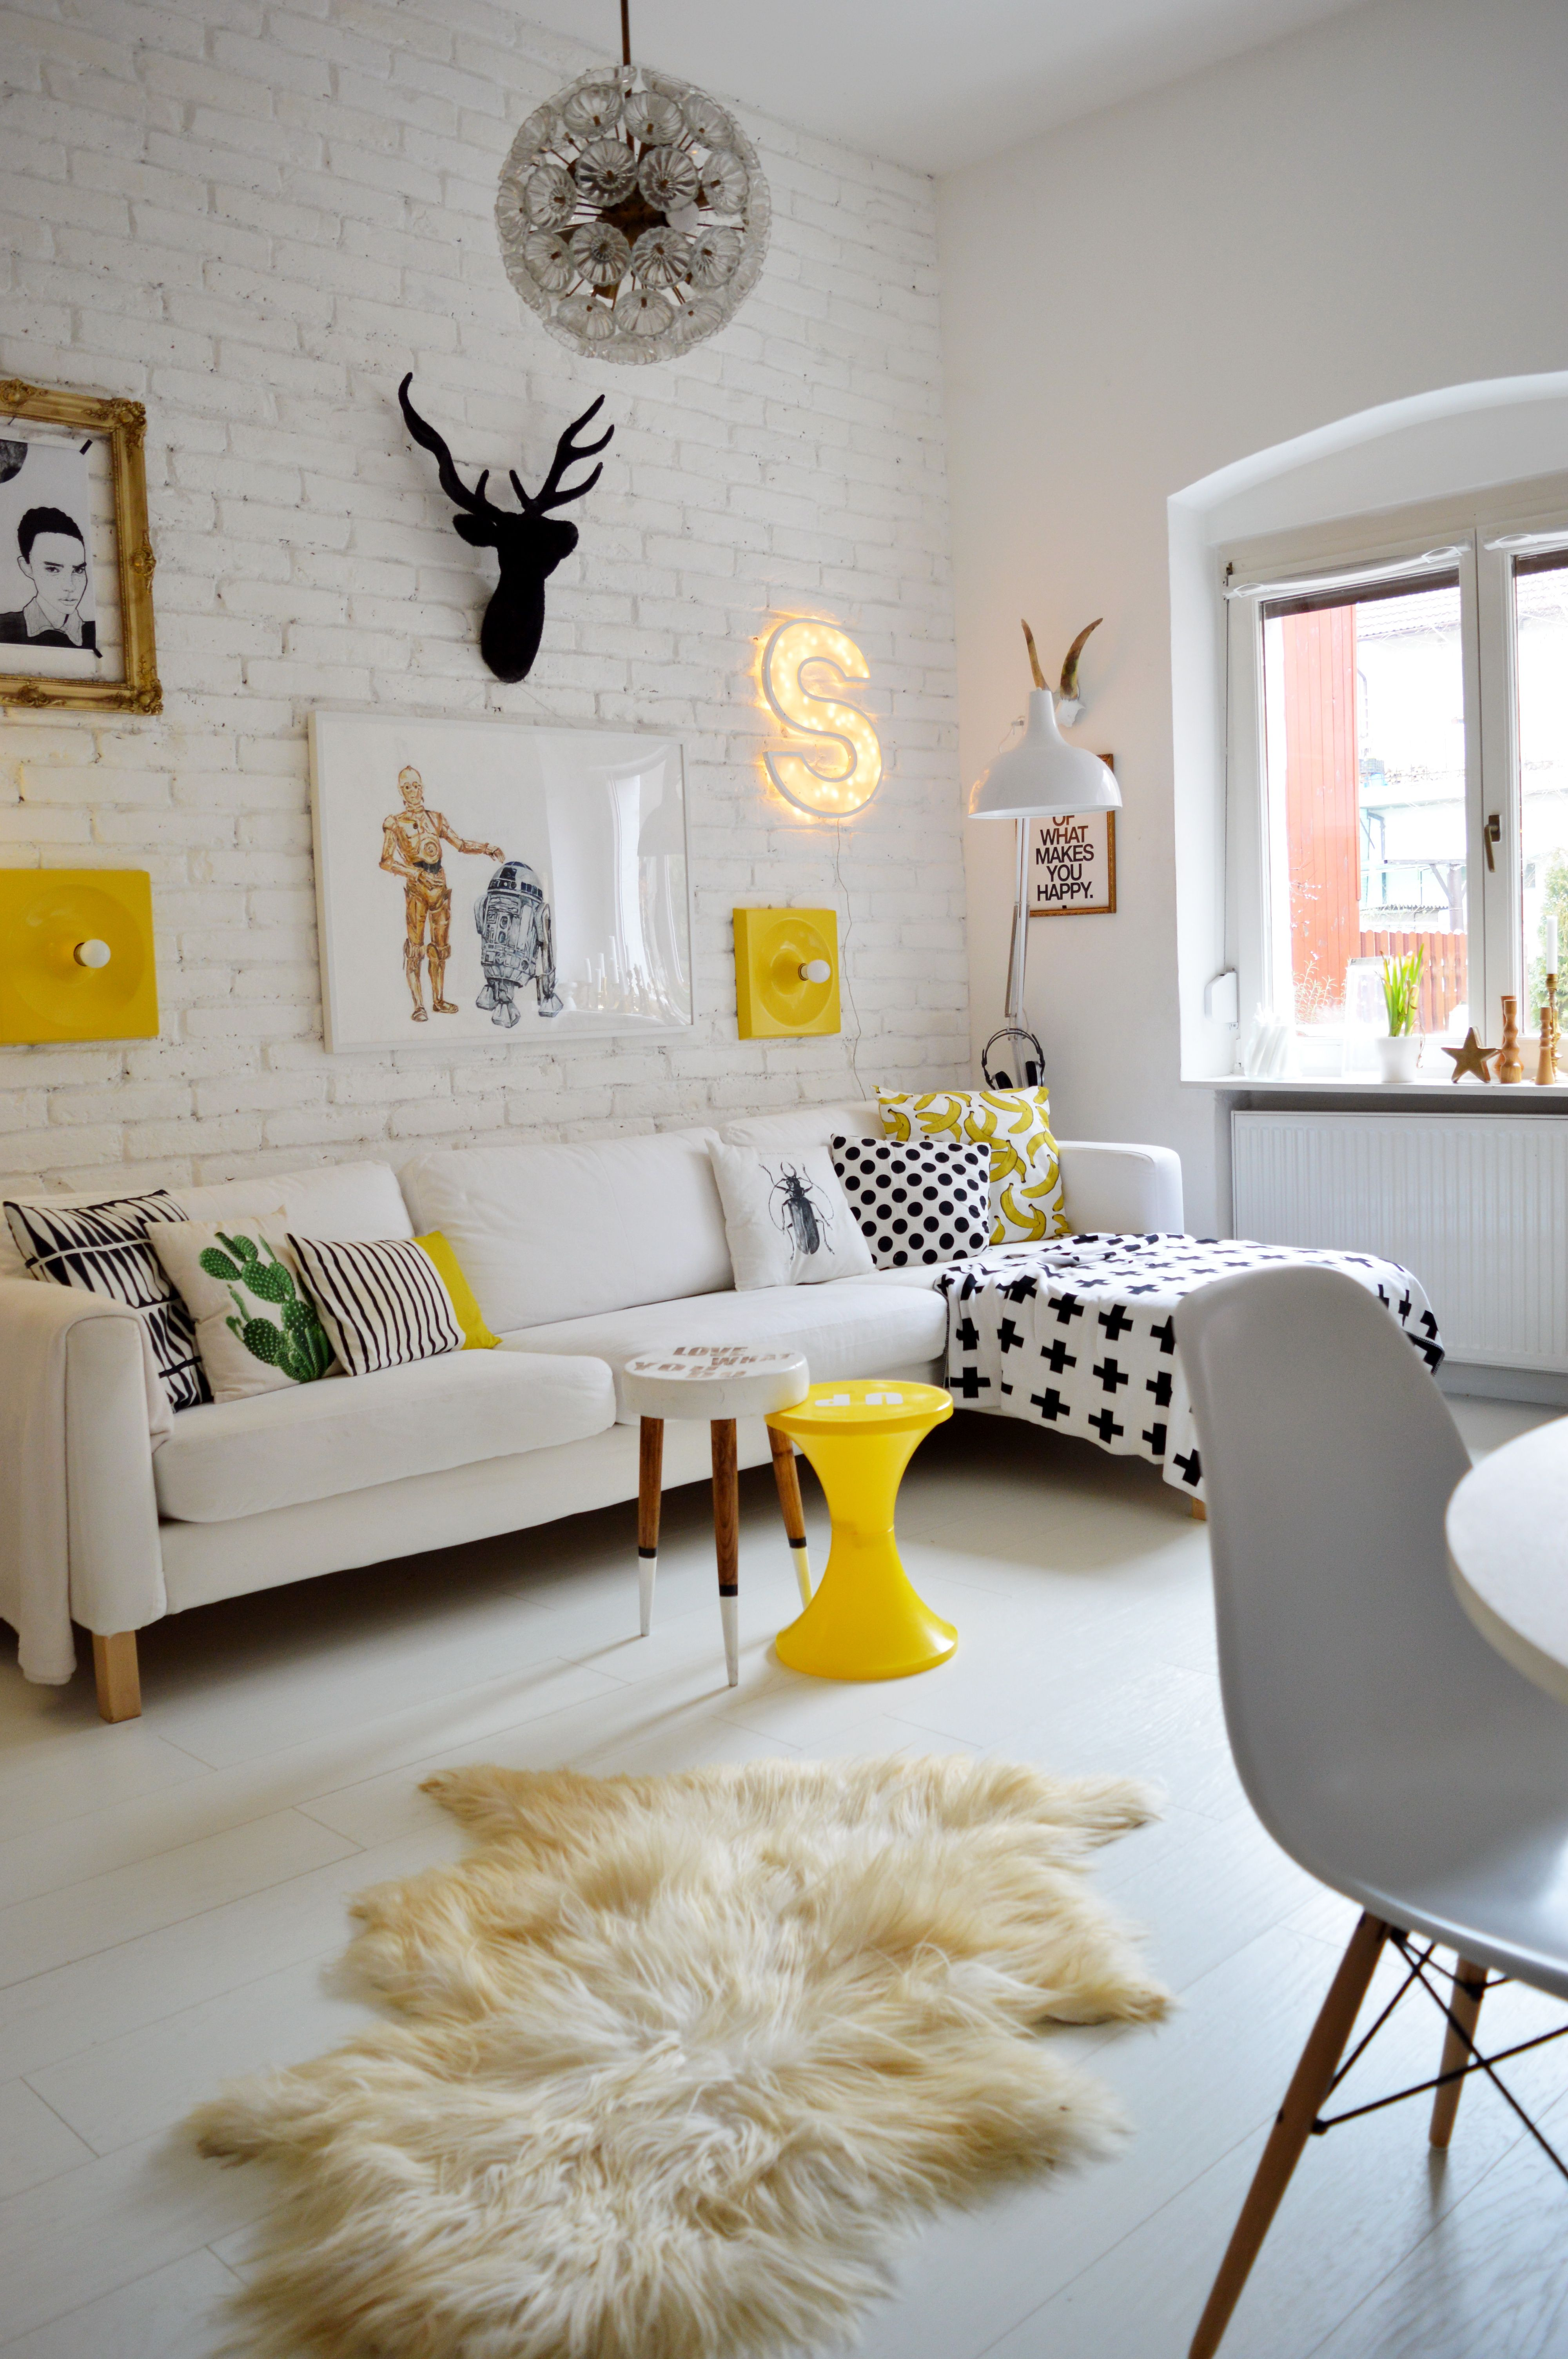 Design attractor white interior with an colorful retro accents - White Living Room With Yellow Accents